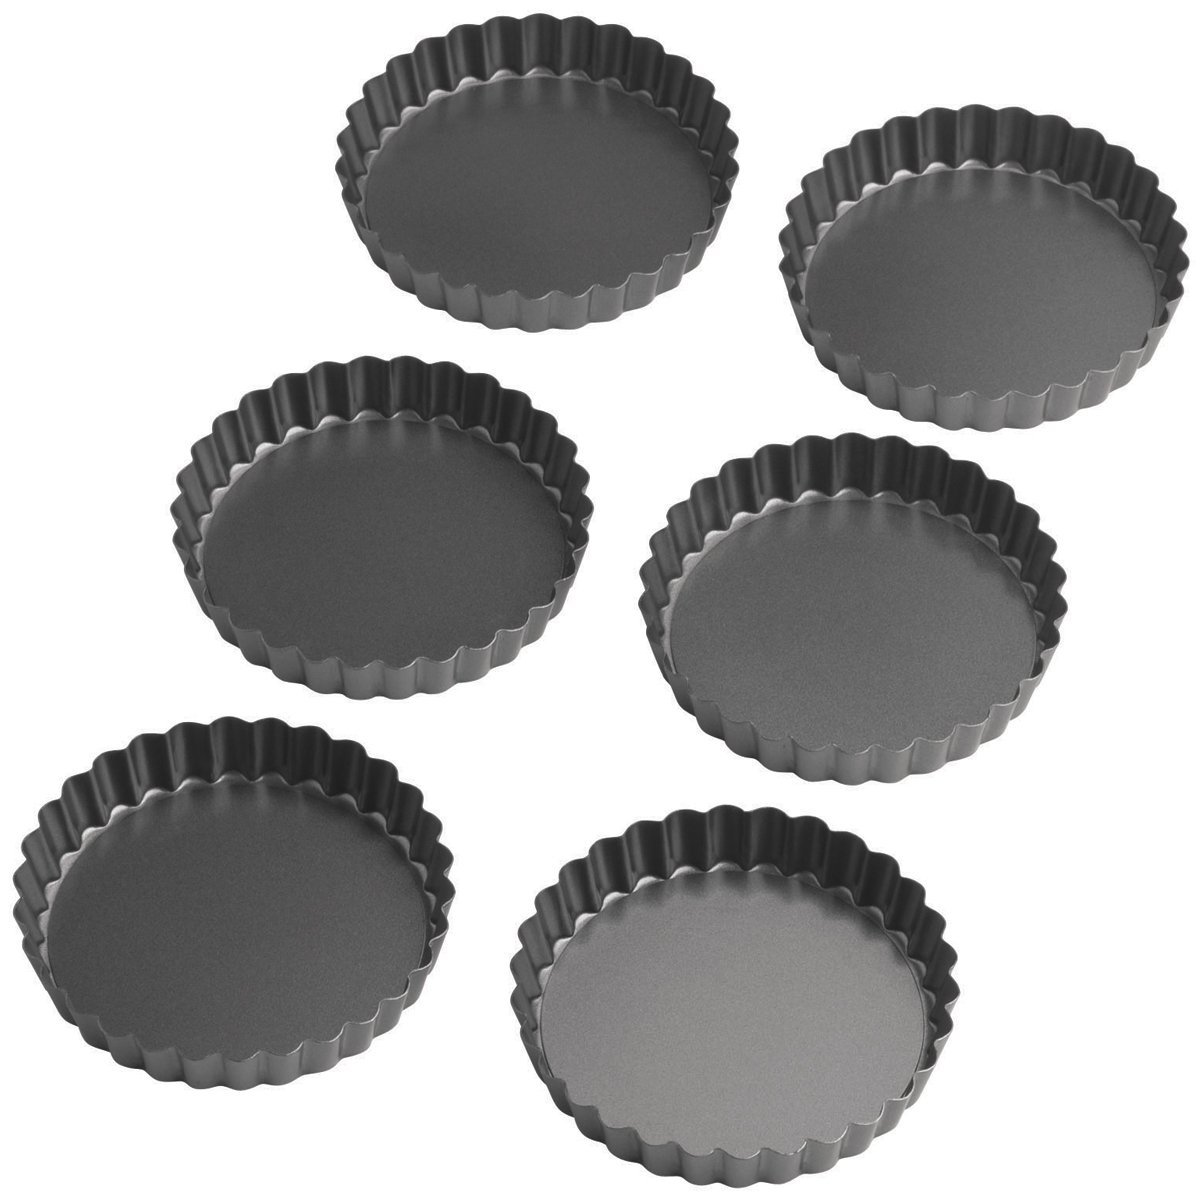 Wilton Perfect Results 4.75 Inch Round Tart/Quiche Pan, Set of 6 by Wilton (Image #4)